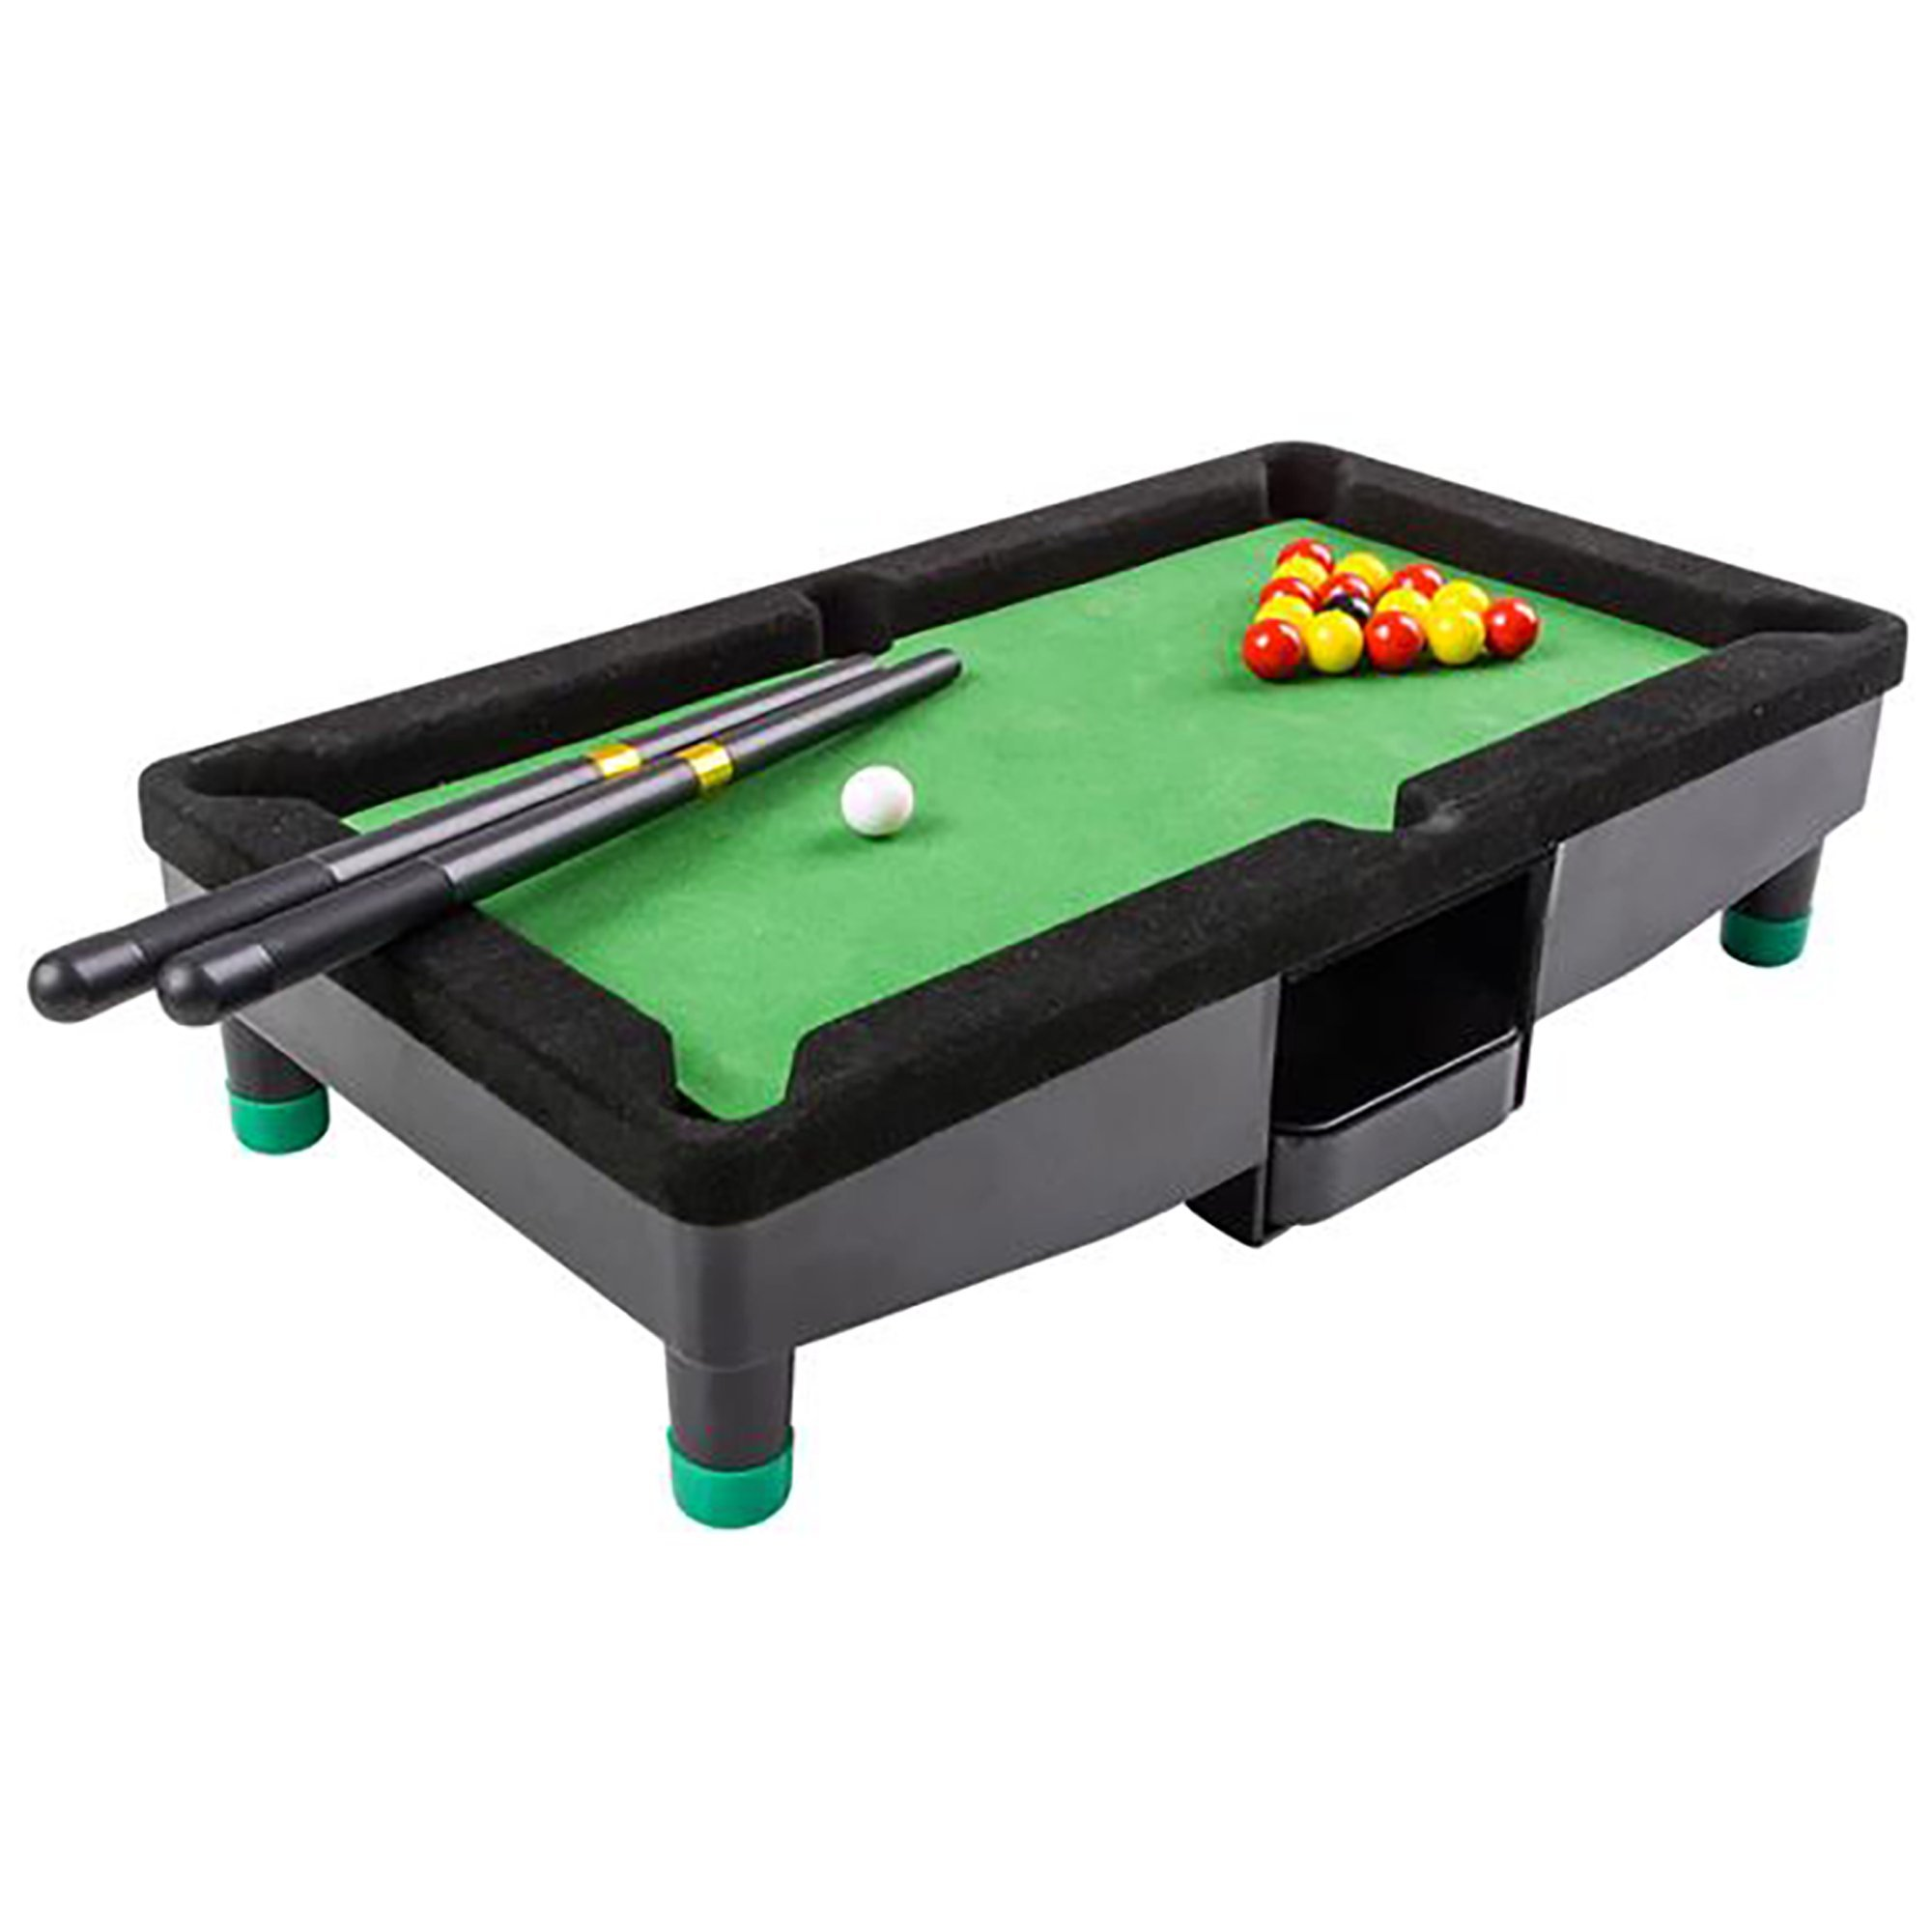 9 Inch Travel Mini Pool Table for Kids by Gamie with 2 Sticks, 16 Balls and Rack - Complete Small Pool Table Set for Children - Great Gift Idea for Boys and Girls, Unique Office Desk Decoration by Gamie